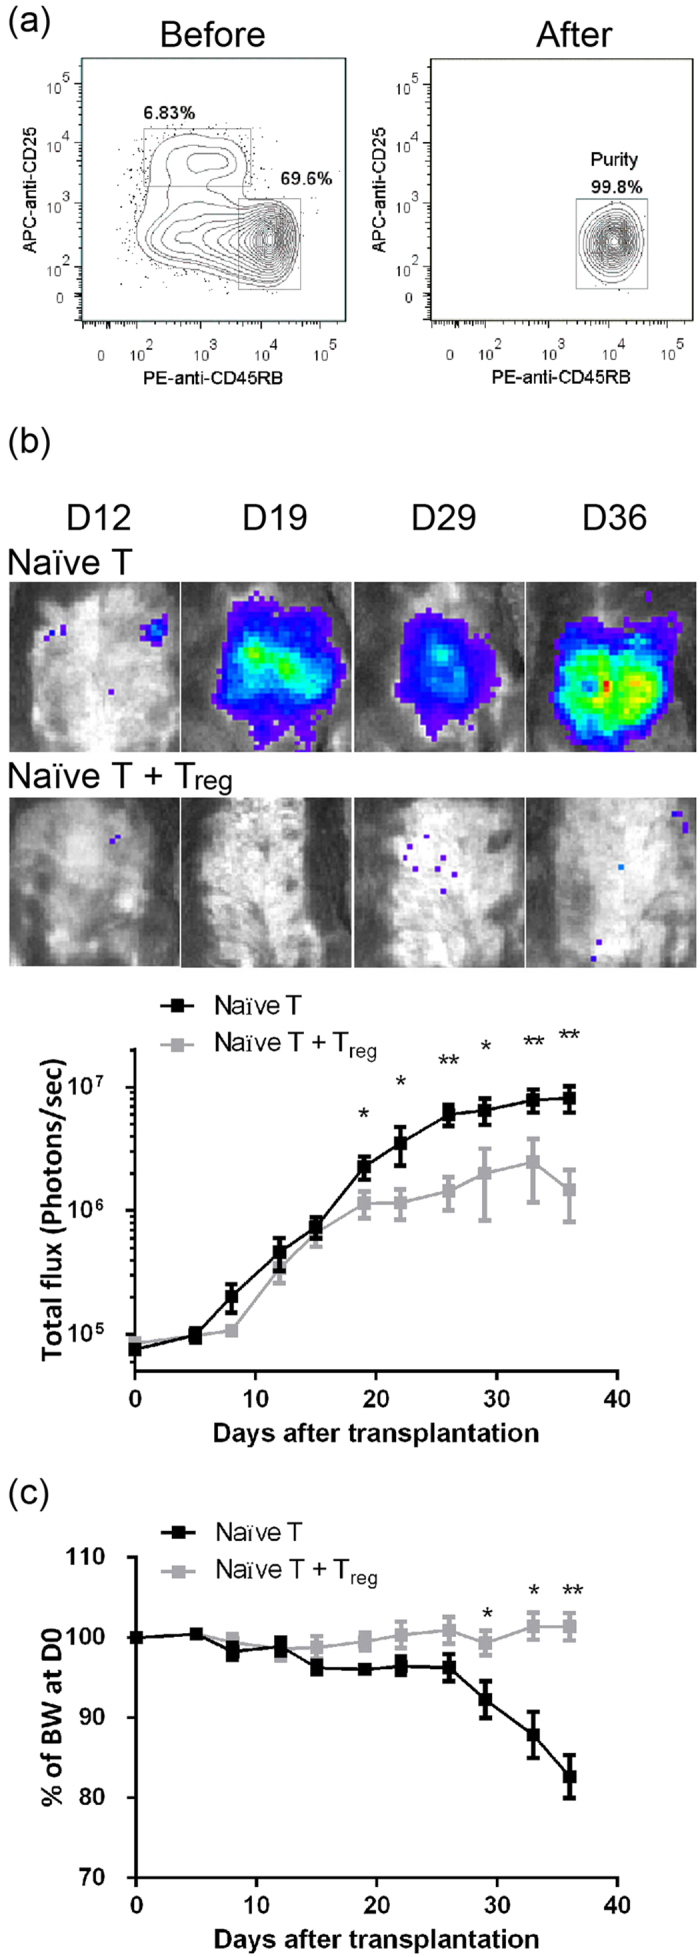 Early detection of autoimmune colitis by BLI analysis. ( a ) Percentages of CD4 + CD25 − CD45RB hi naïve T cells from Luc Tg. spleens before and after sorting are shown. ( b ) Continued BLI analysis of Luc-expressing, naïve T cell-transferred Rag1-ko mice. Rag1-ko host mice that received Luc-expressing naïve T cells or naïve T cells + CD4 + CD25 + CD45RB lo T reg cells were analyzed with IVIS twice a week. Abdominal BLIs were significantly detected at D12-D15 PAT and thereafter. Total influx at each time point after adoptive transfer is shown. ( c ) Changes of BW of Rag1-ko host mice after transfer of Luc-expressing naïve T cells. BW shown at each time point is normalized by the BW at D0. Data from four repeated experiments are combined (naïve T, n = 14; naïve T + T reg , n = 14) and represented by Means ± SEM. (* p